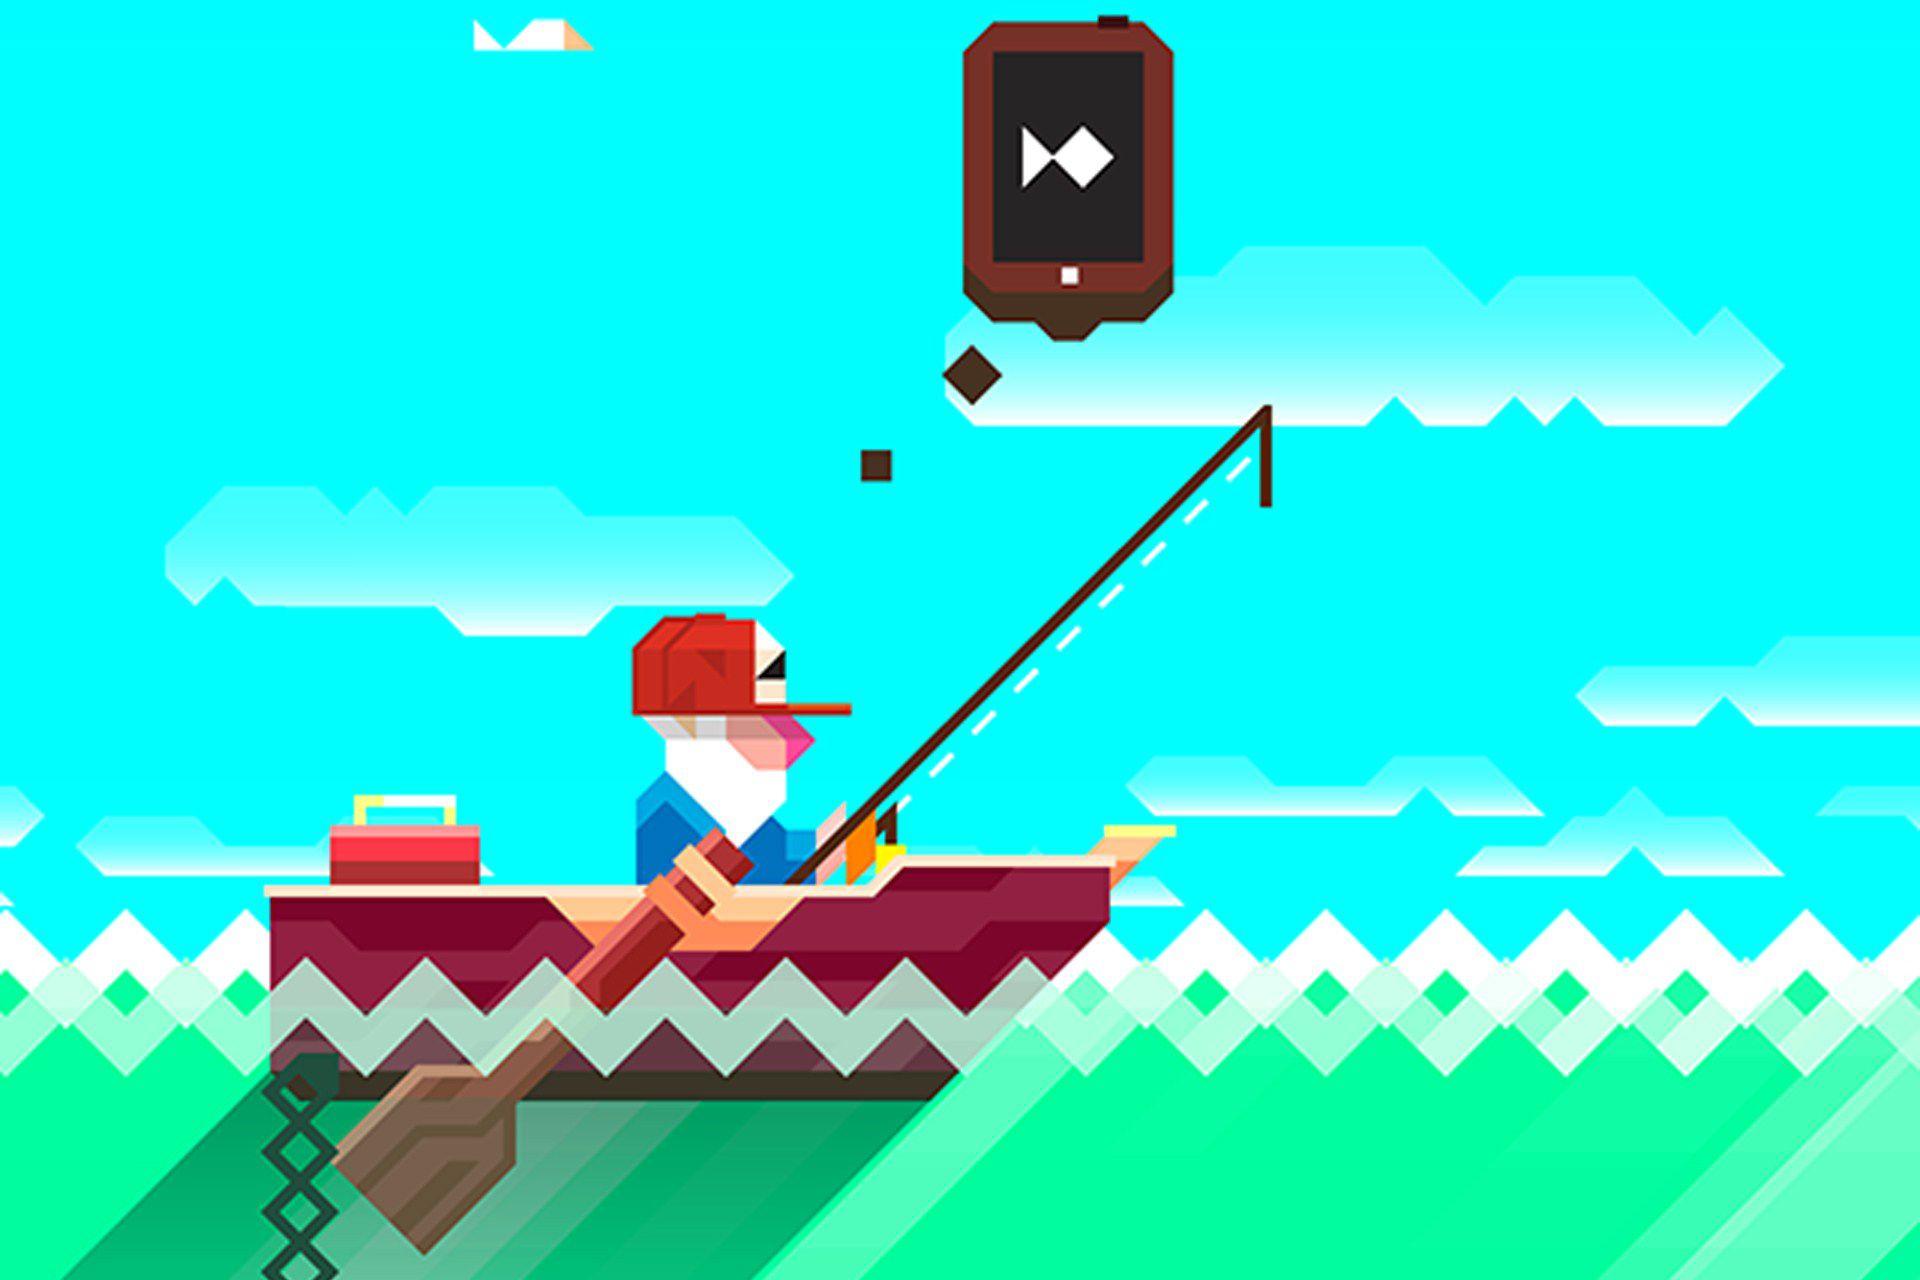 Ridiculous Fishing Apple Game of the Year 2013